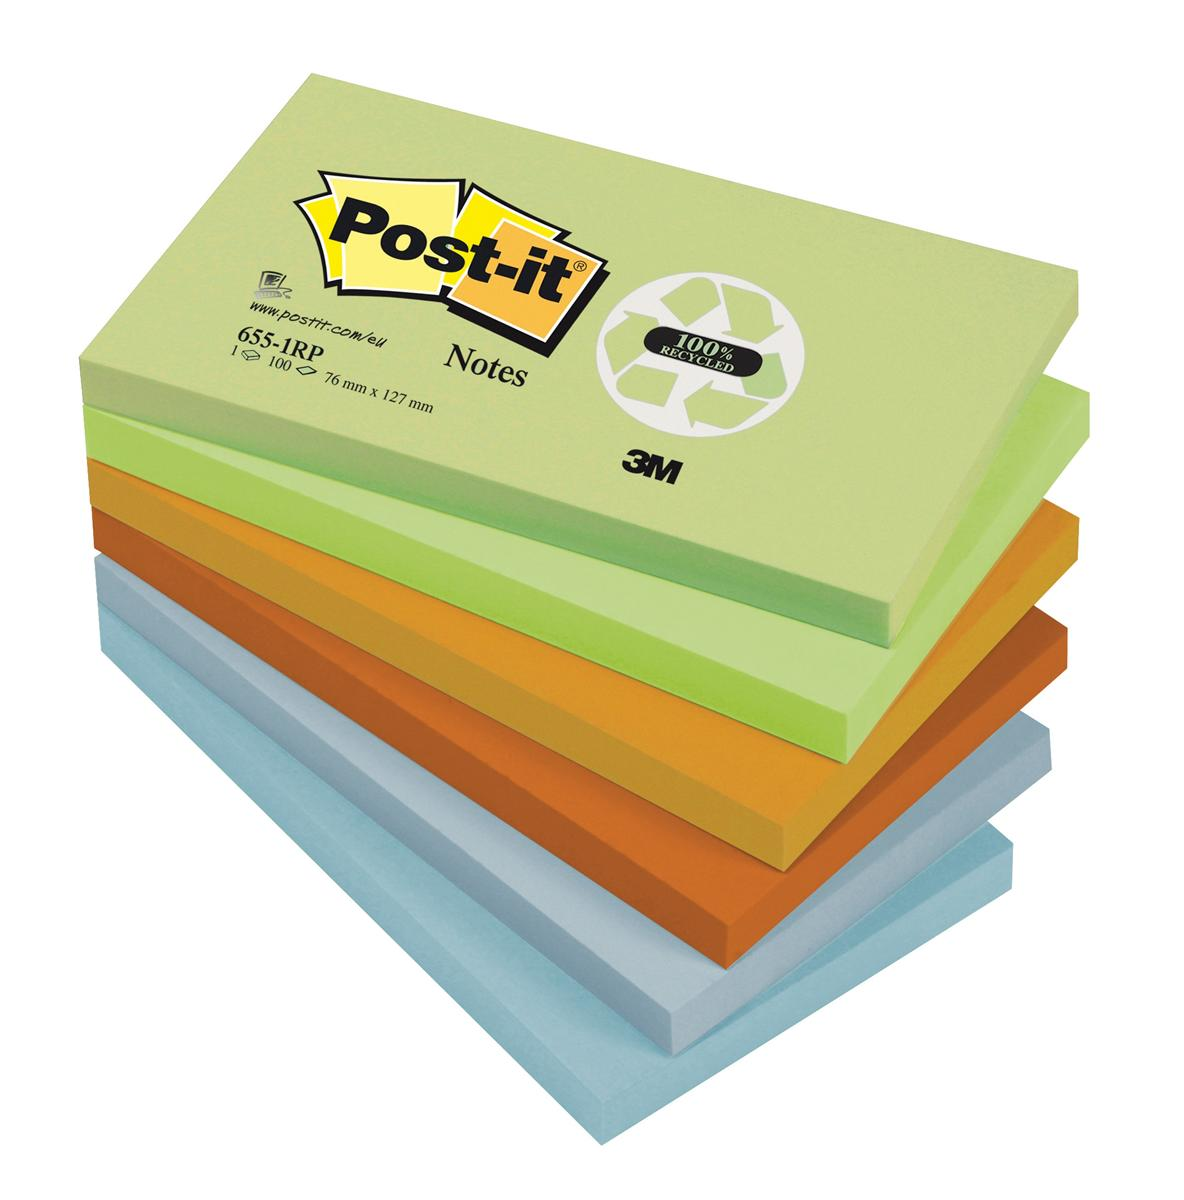 Post-it Notes Recycled 100 Sheets per Pad 76x127mm Pastel Rainbow Ref 655-1RP [Pack 12]